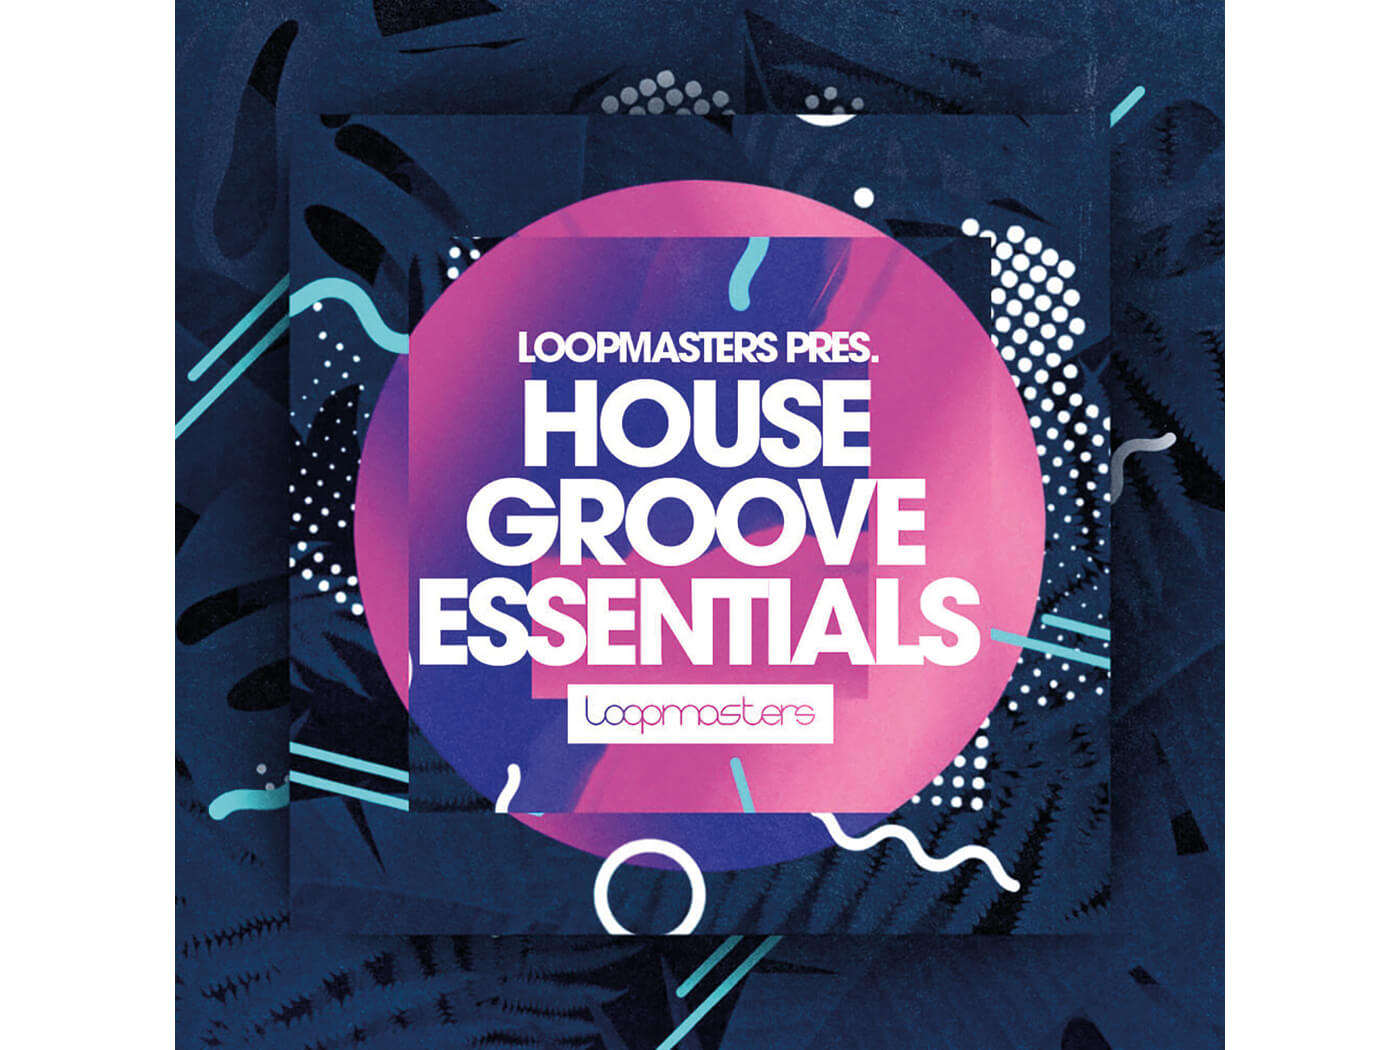 Loopmasters House Groove Essentials Review